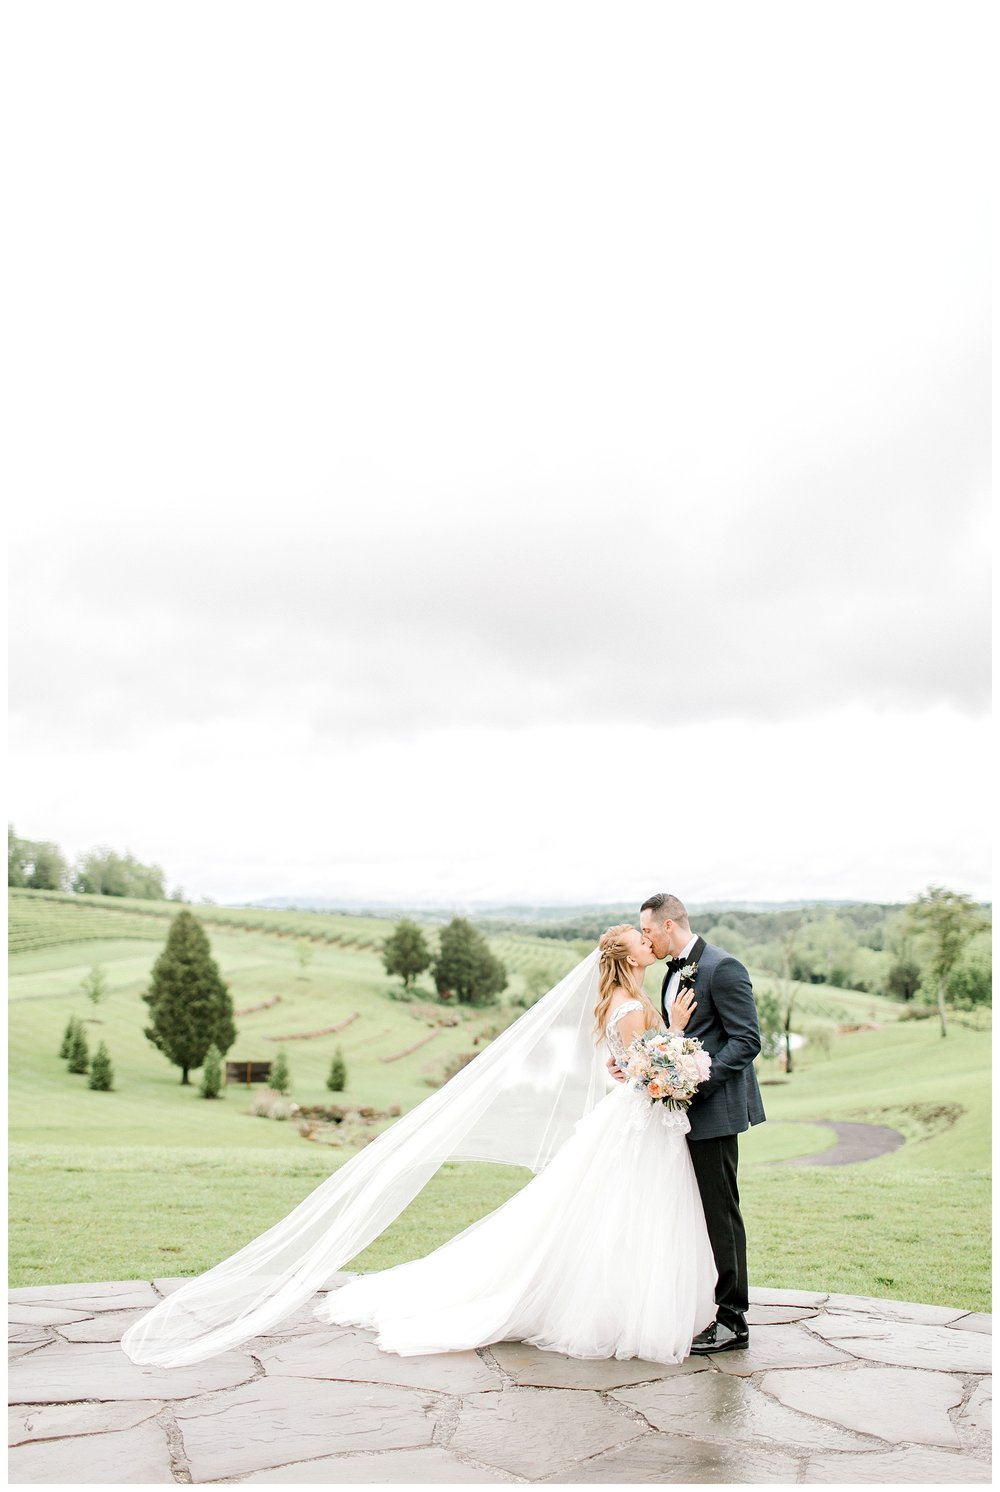 Stone Tower Winery Wedding Virginia Wedding Photographer Kir Tuben_0000.jpg